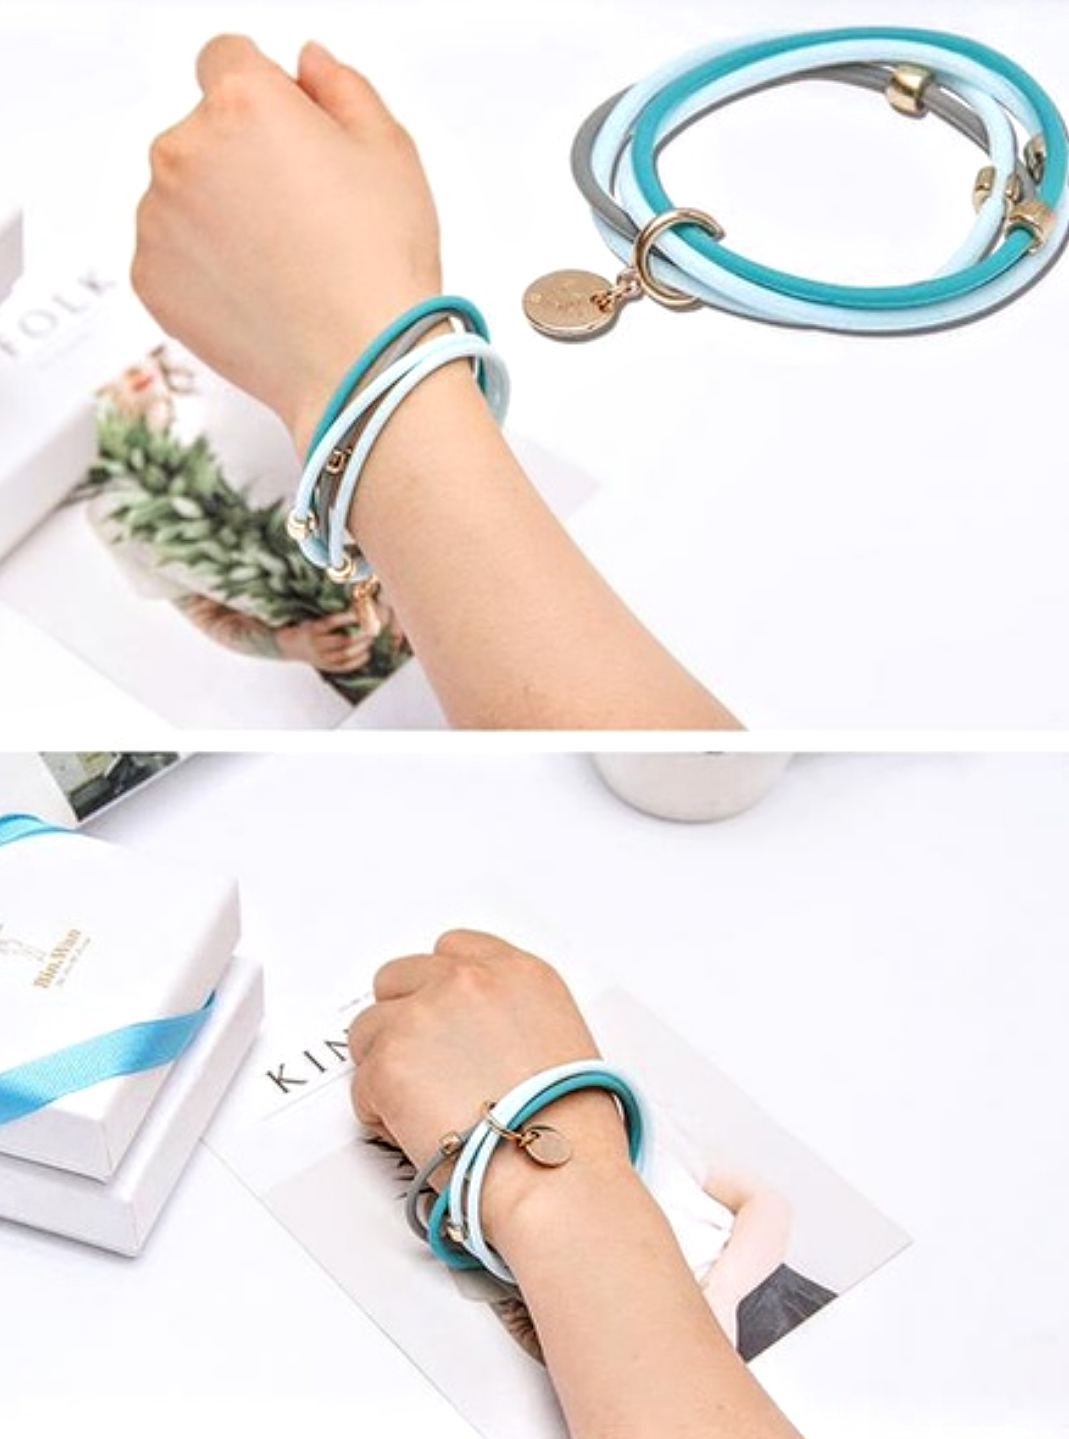 Glamza Mosquito Repellent Bracelet, Household Supplies by My Wholesale Warehouse